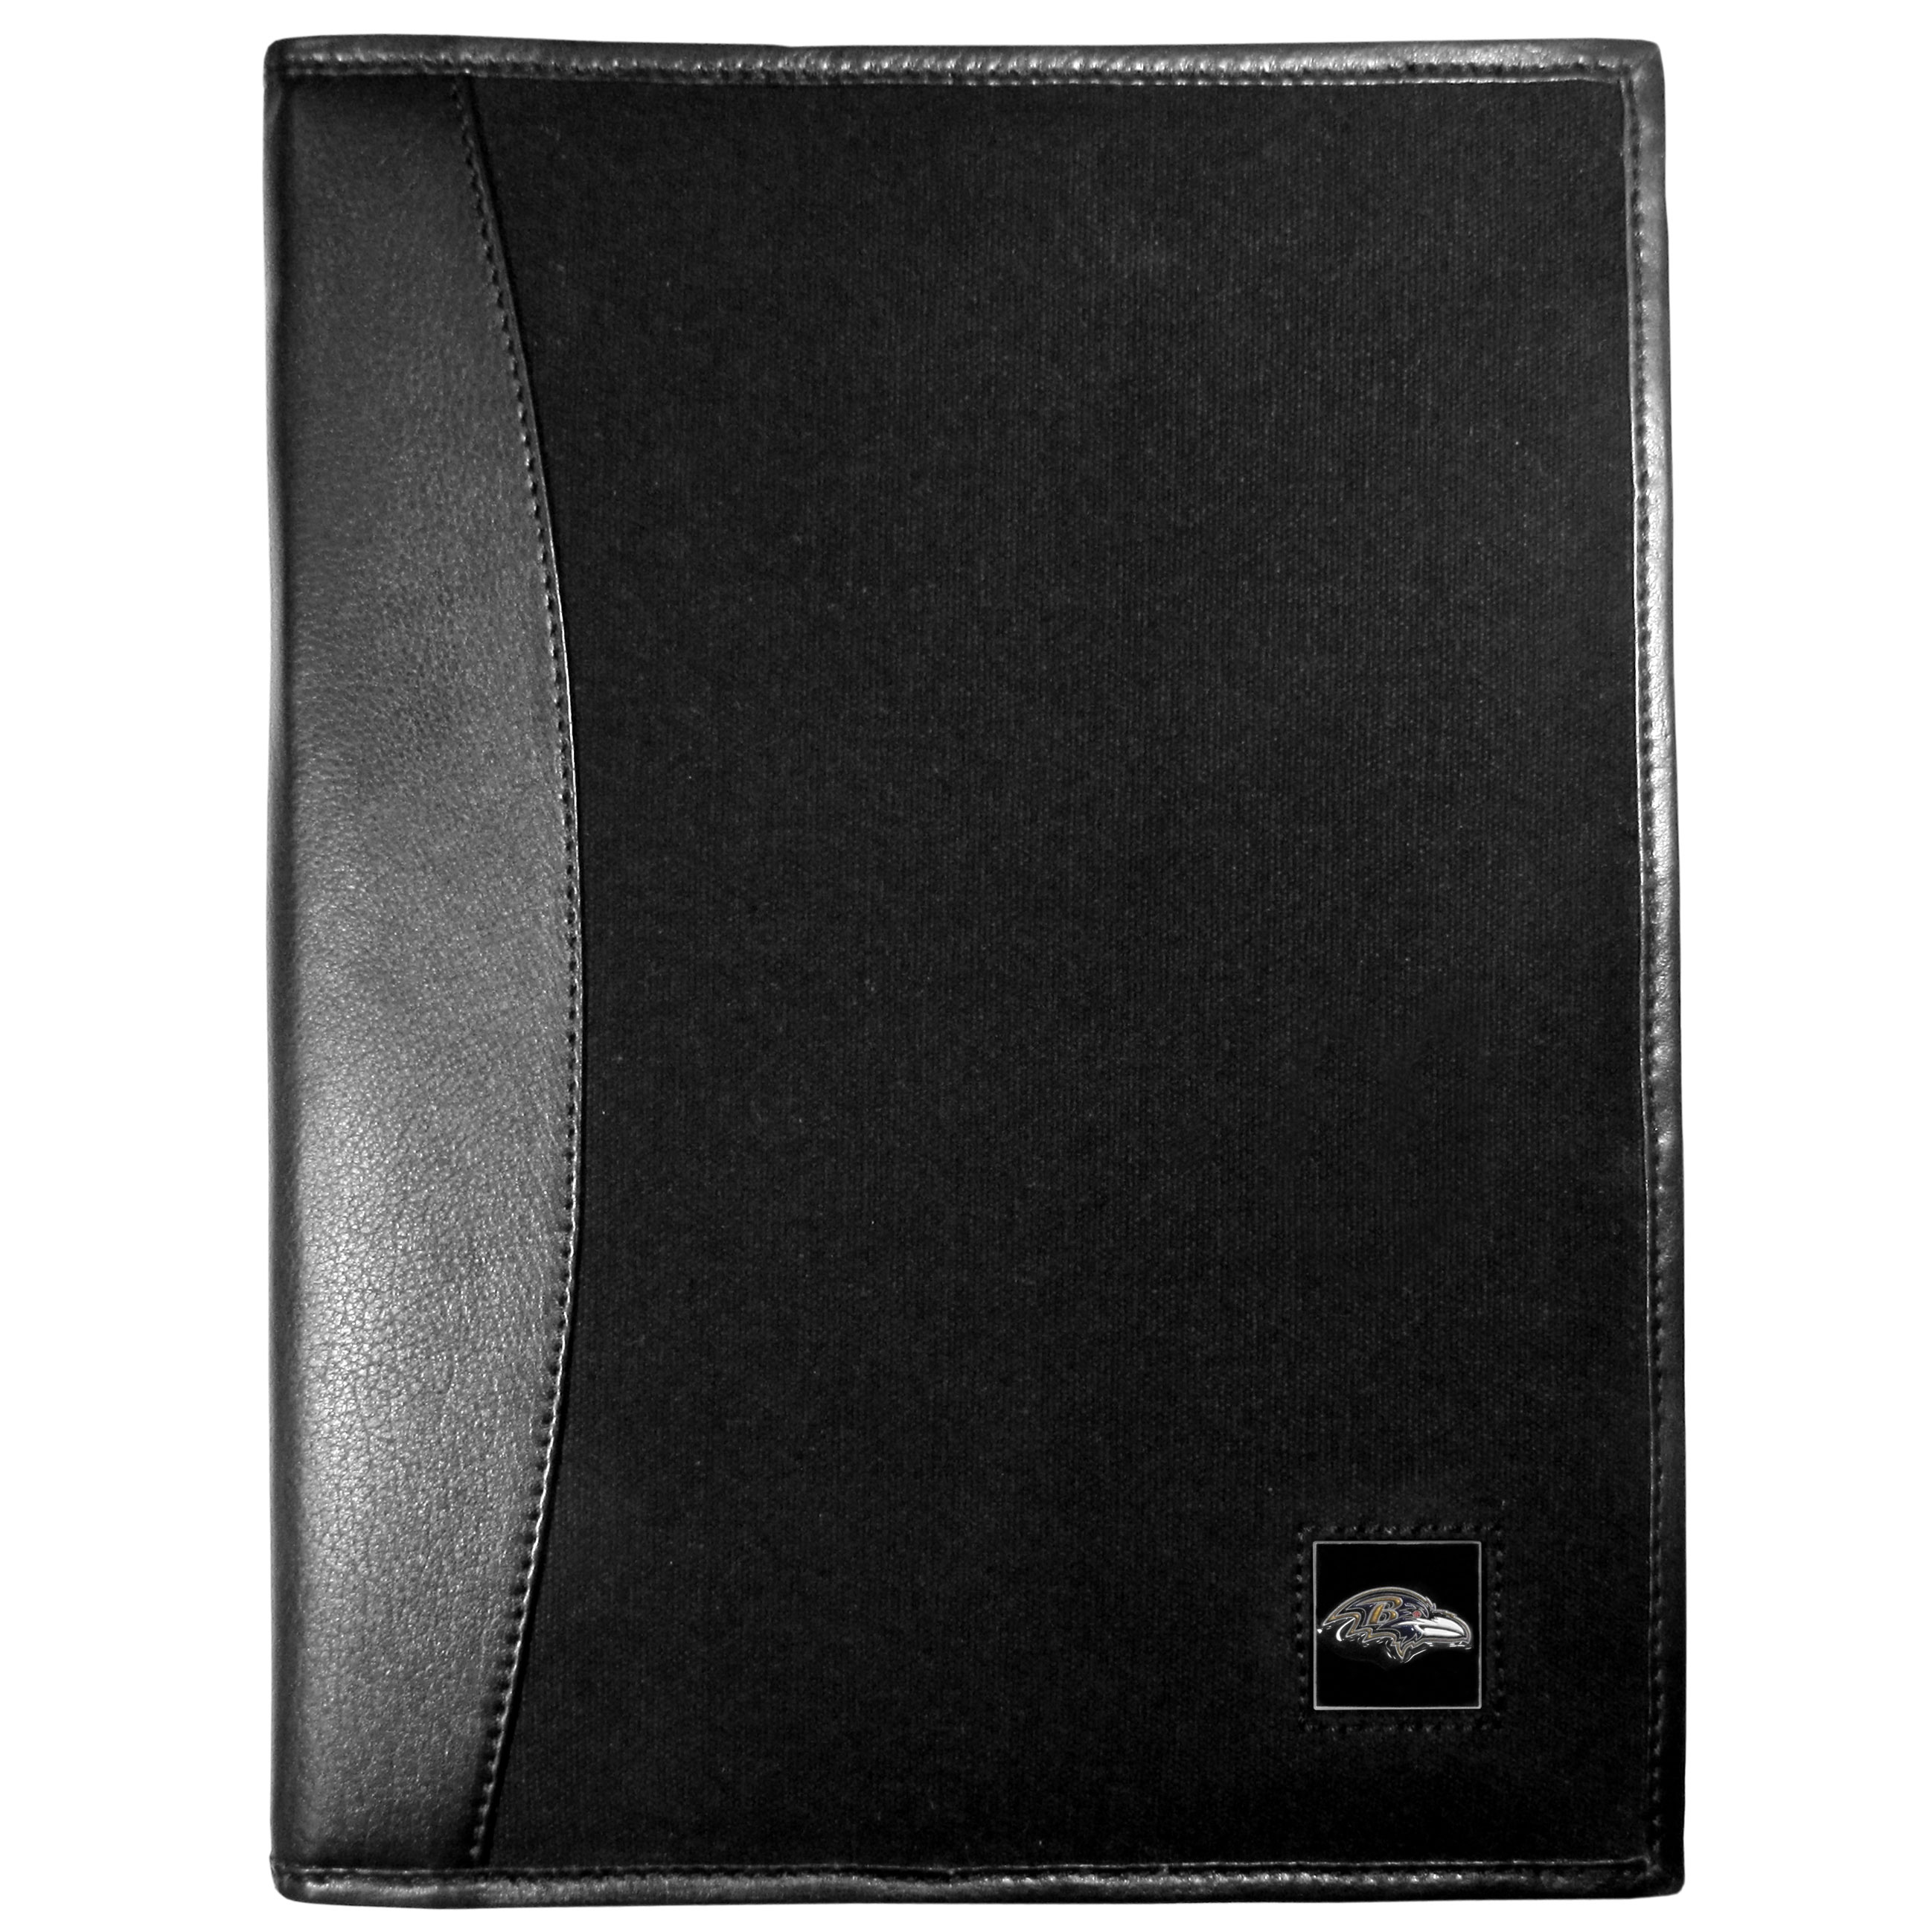 Baltimore Ravens Leather and Canvas Padfolio - Our leather and canvas padfolio perfectly blends form and function. The attractive portfolio is bound in fine grain leather with an attractive canvas finish and the interior is a soft nylon. This high quality business accessory also features a fully cast metal Baltimore Ravens emblem that is subtly set in the corner of the organizer. It is packed with features like 6 card slots for badges, business cards, hotel keys or credit cards and ID with a large pocket for loose papers and a writing tablet slot making it a must-have for the professional on the go.